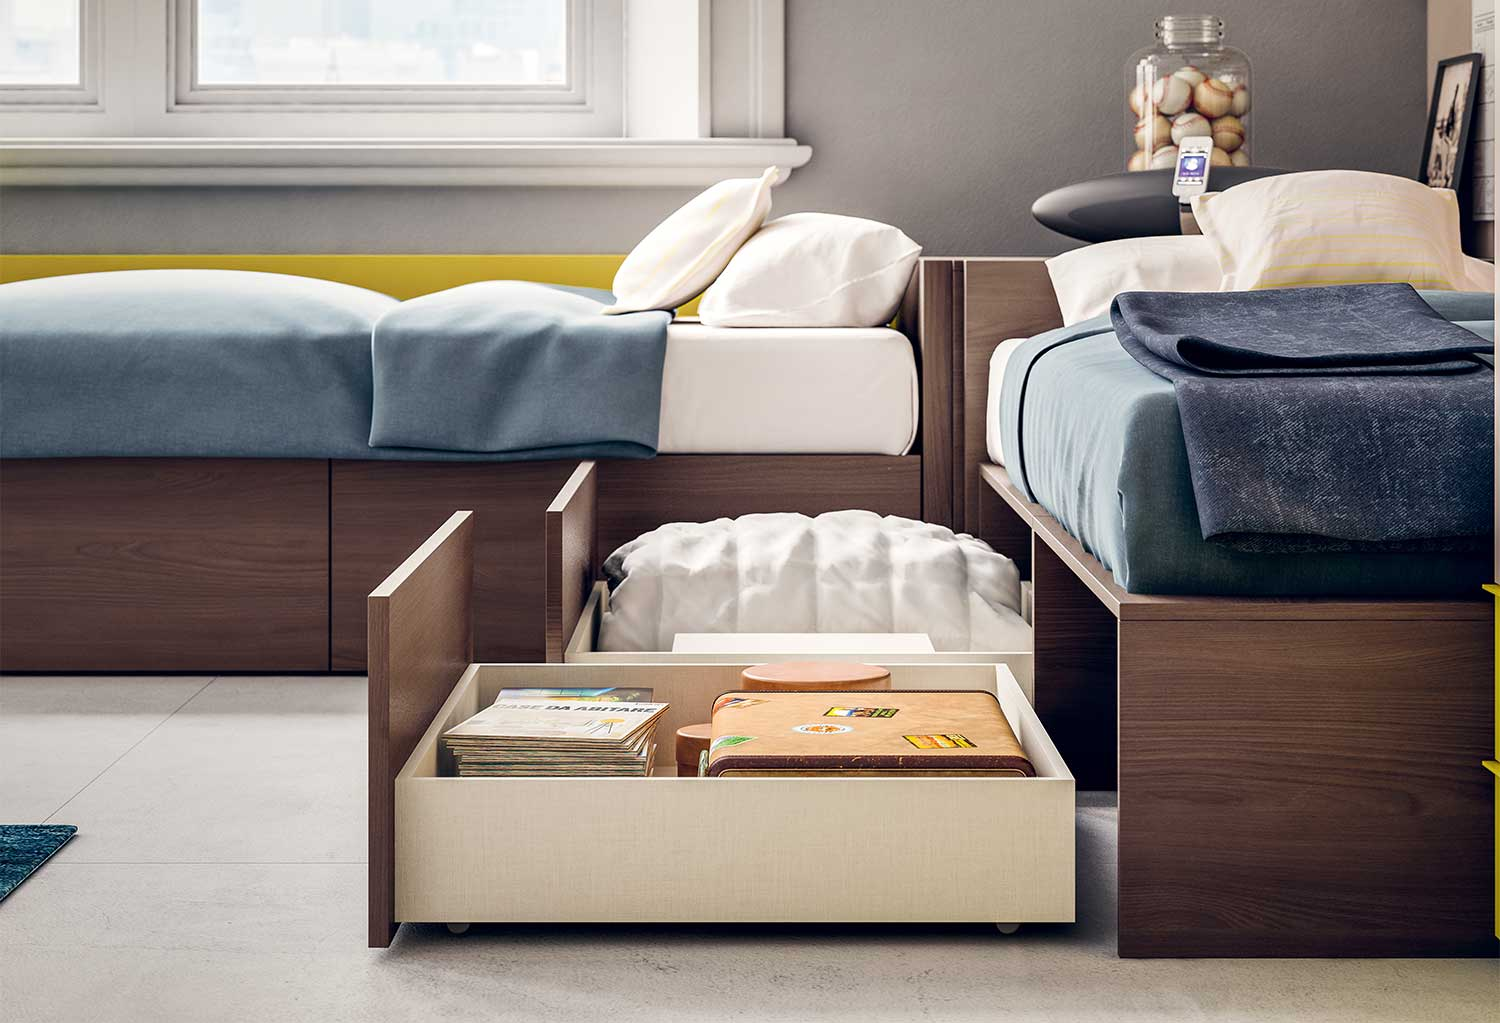 Spacious drawers can be fully pulled out to clean the space below the bed